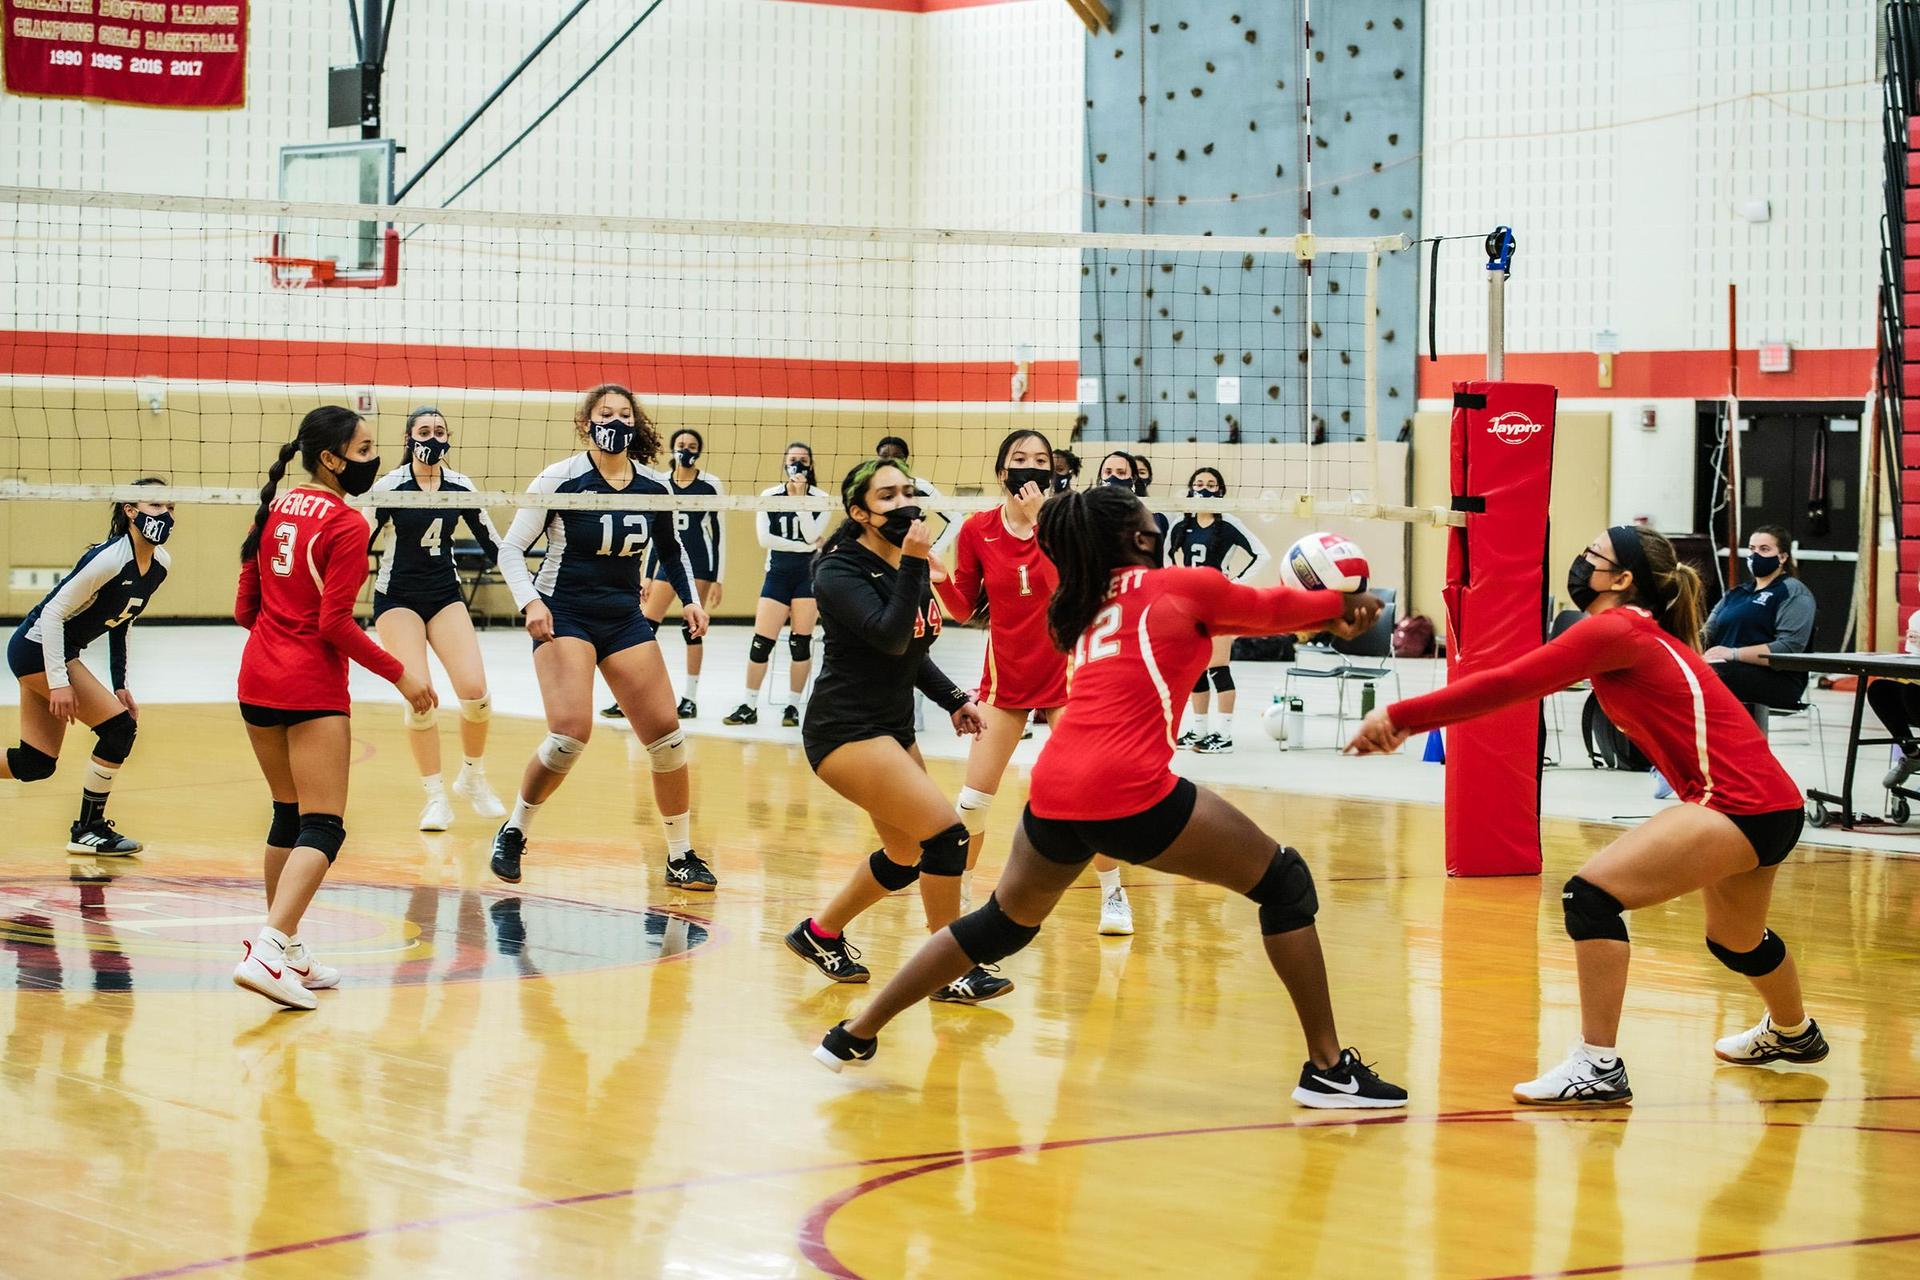 A view of a volleyball game in process